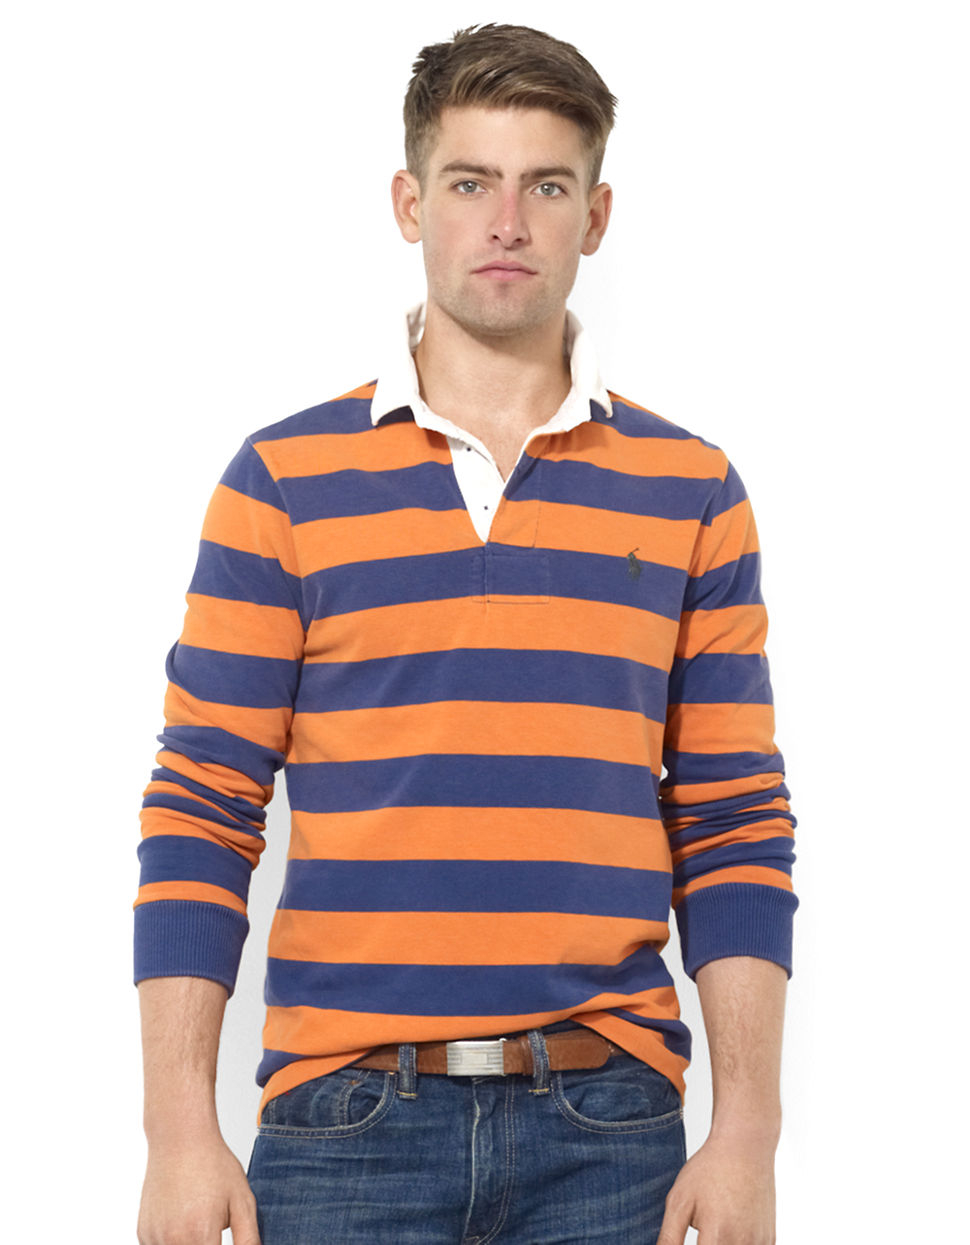 Polo ralph lauren customfit longsleeved striped jersey for Long sleeve striped rugby shirt